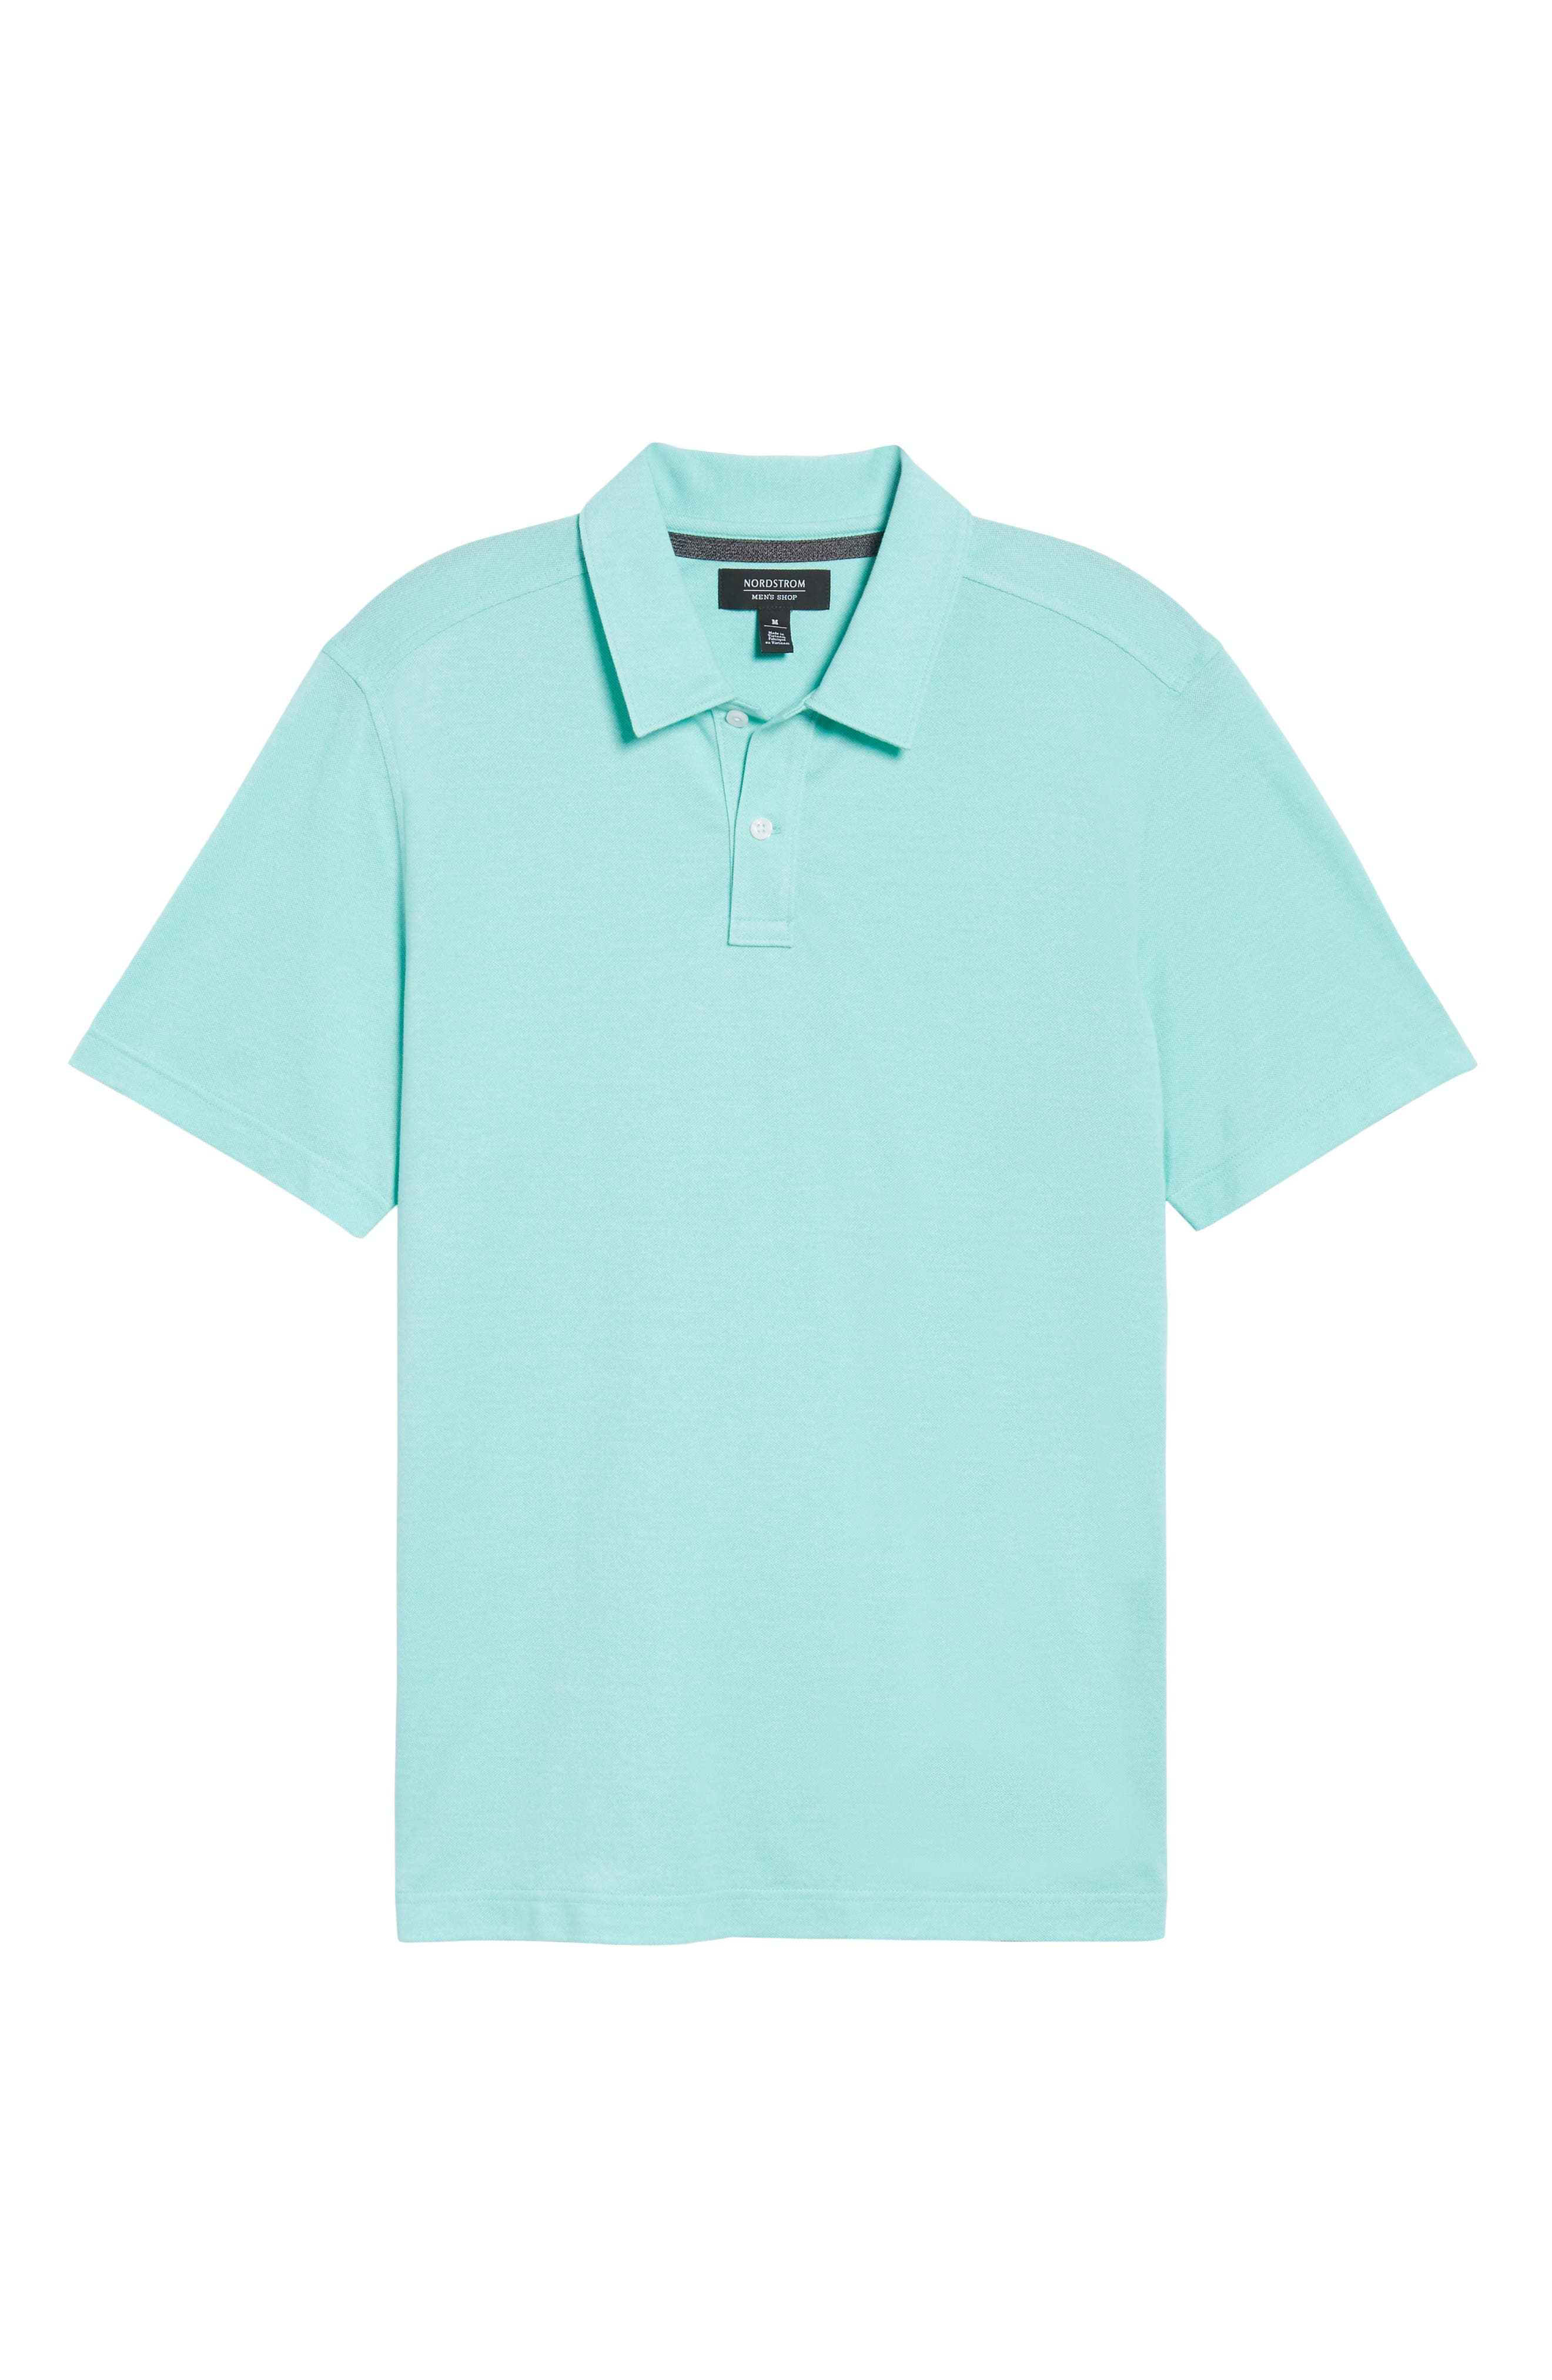 Regular Fit Polo,                             Alternate thumbnail 6, color,                             TEAL GLOSS